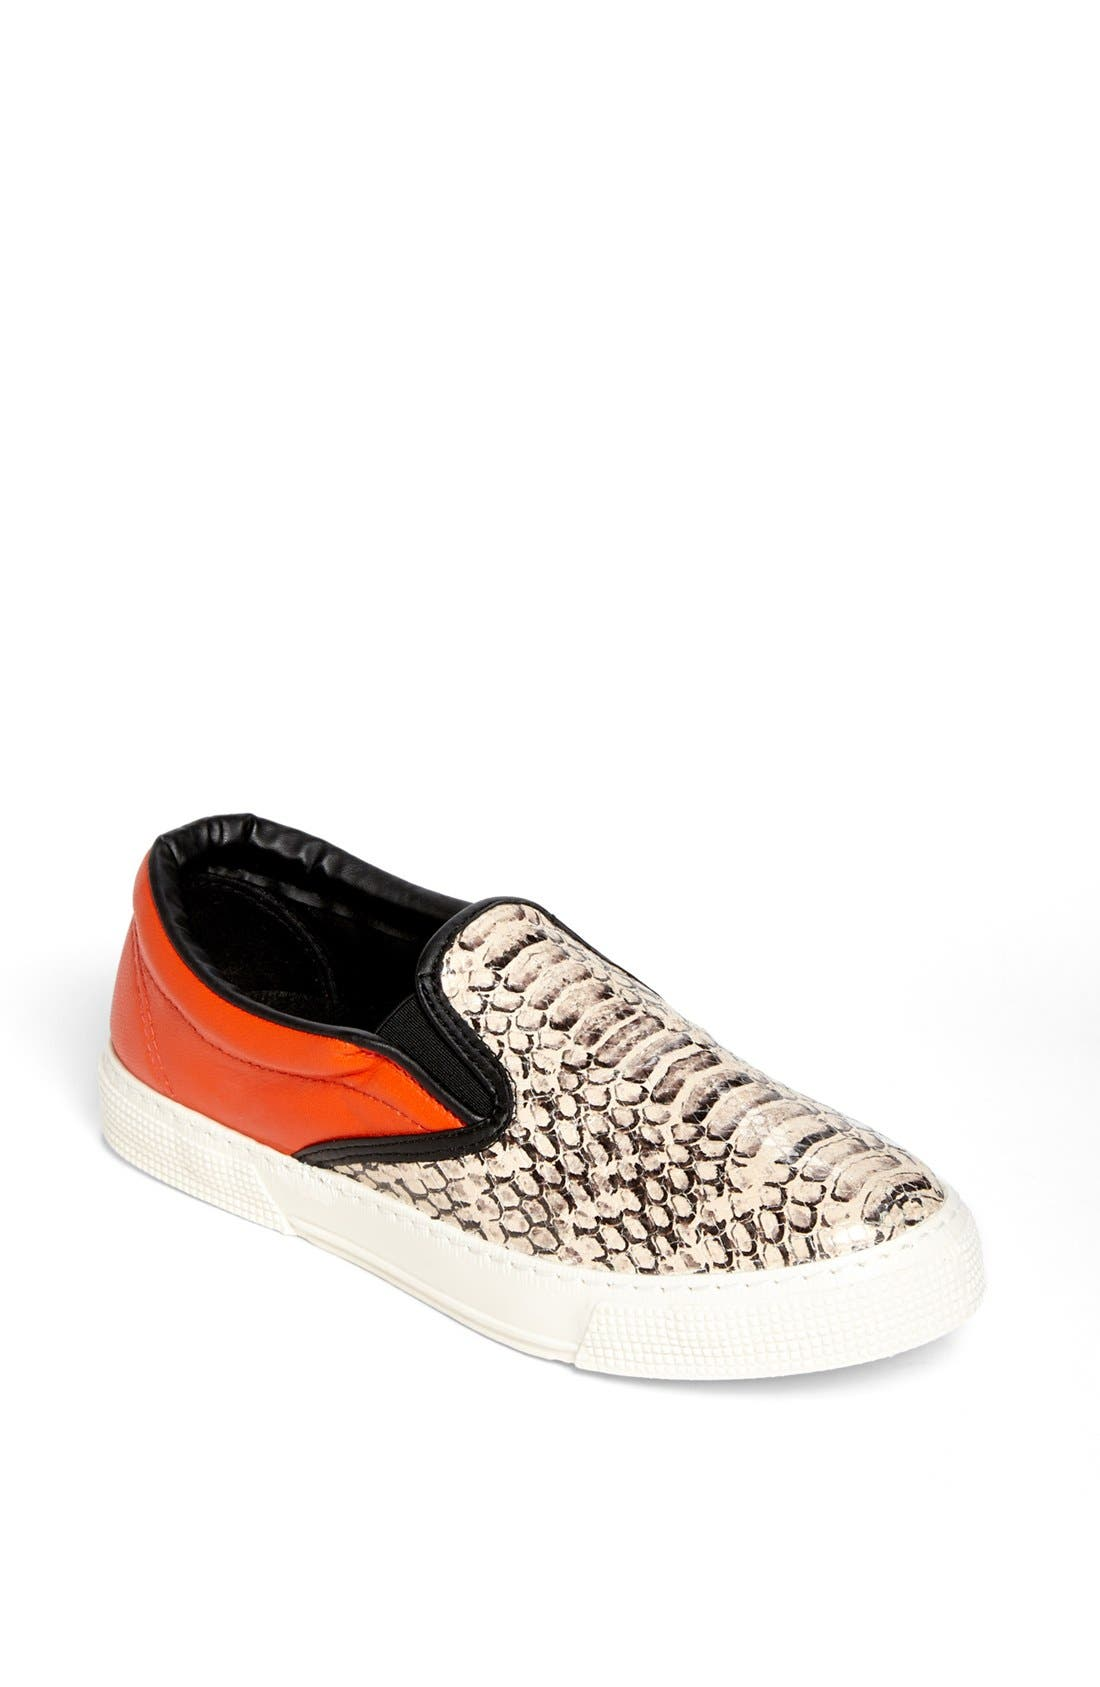 Alternate Image 1 Selected - Kurt Geiger London Slip-On Sneaker